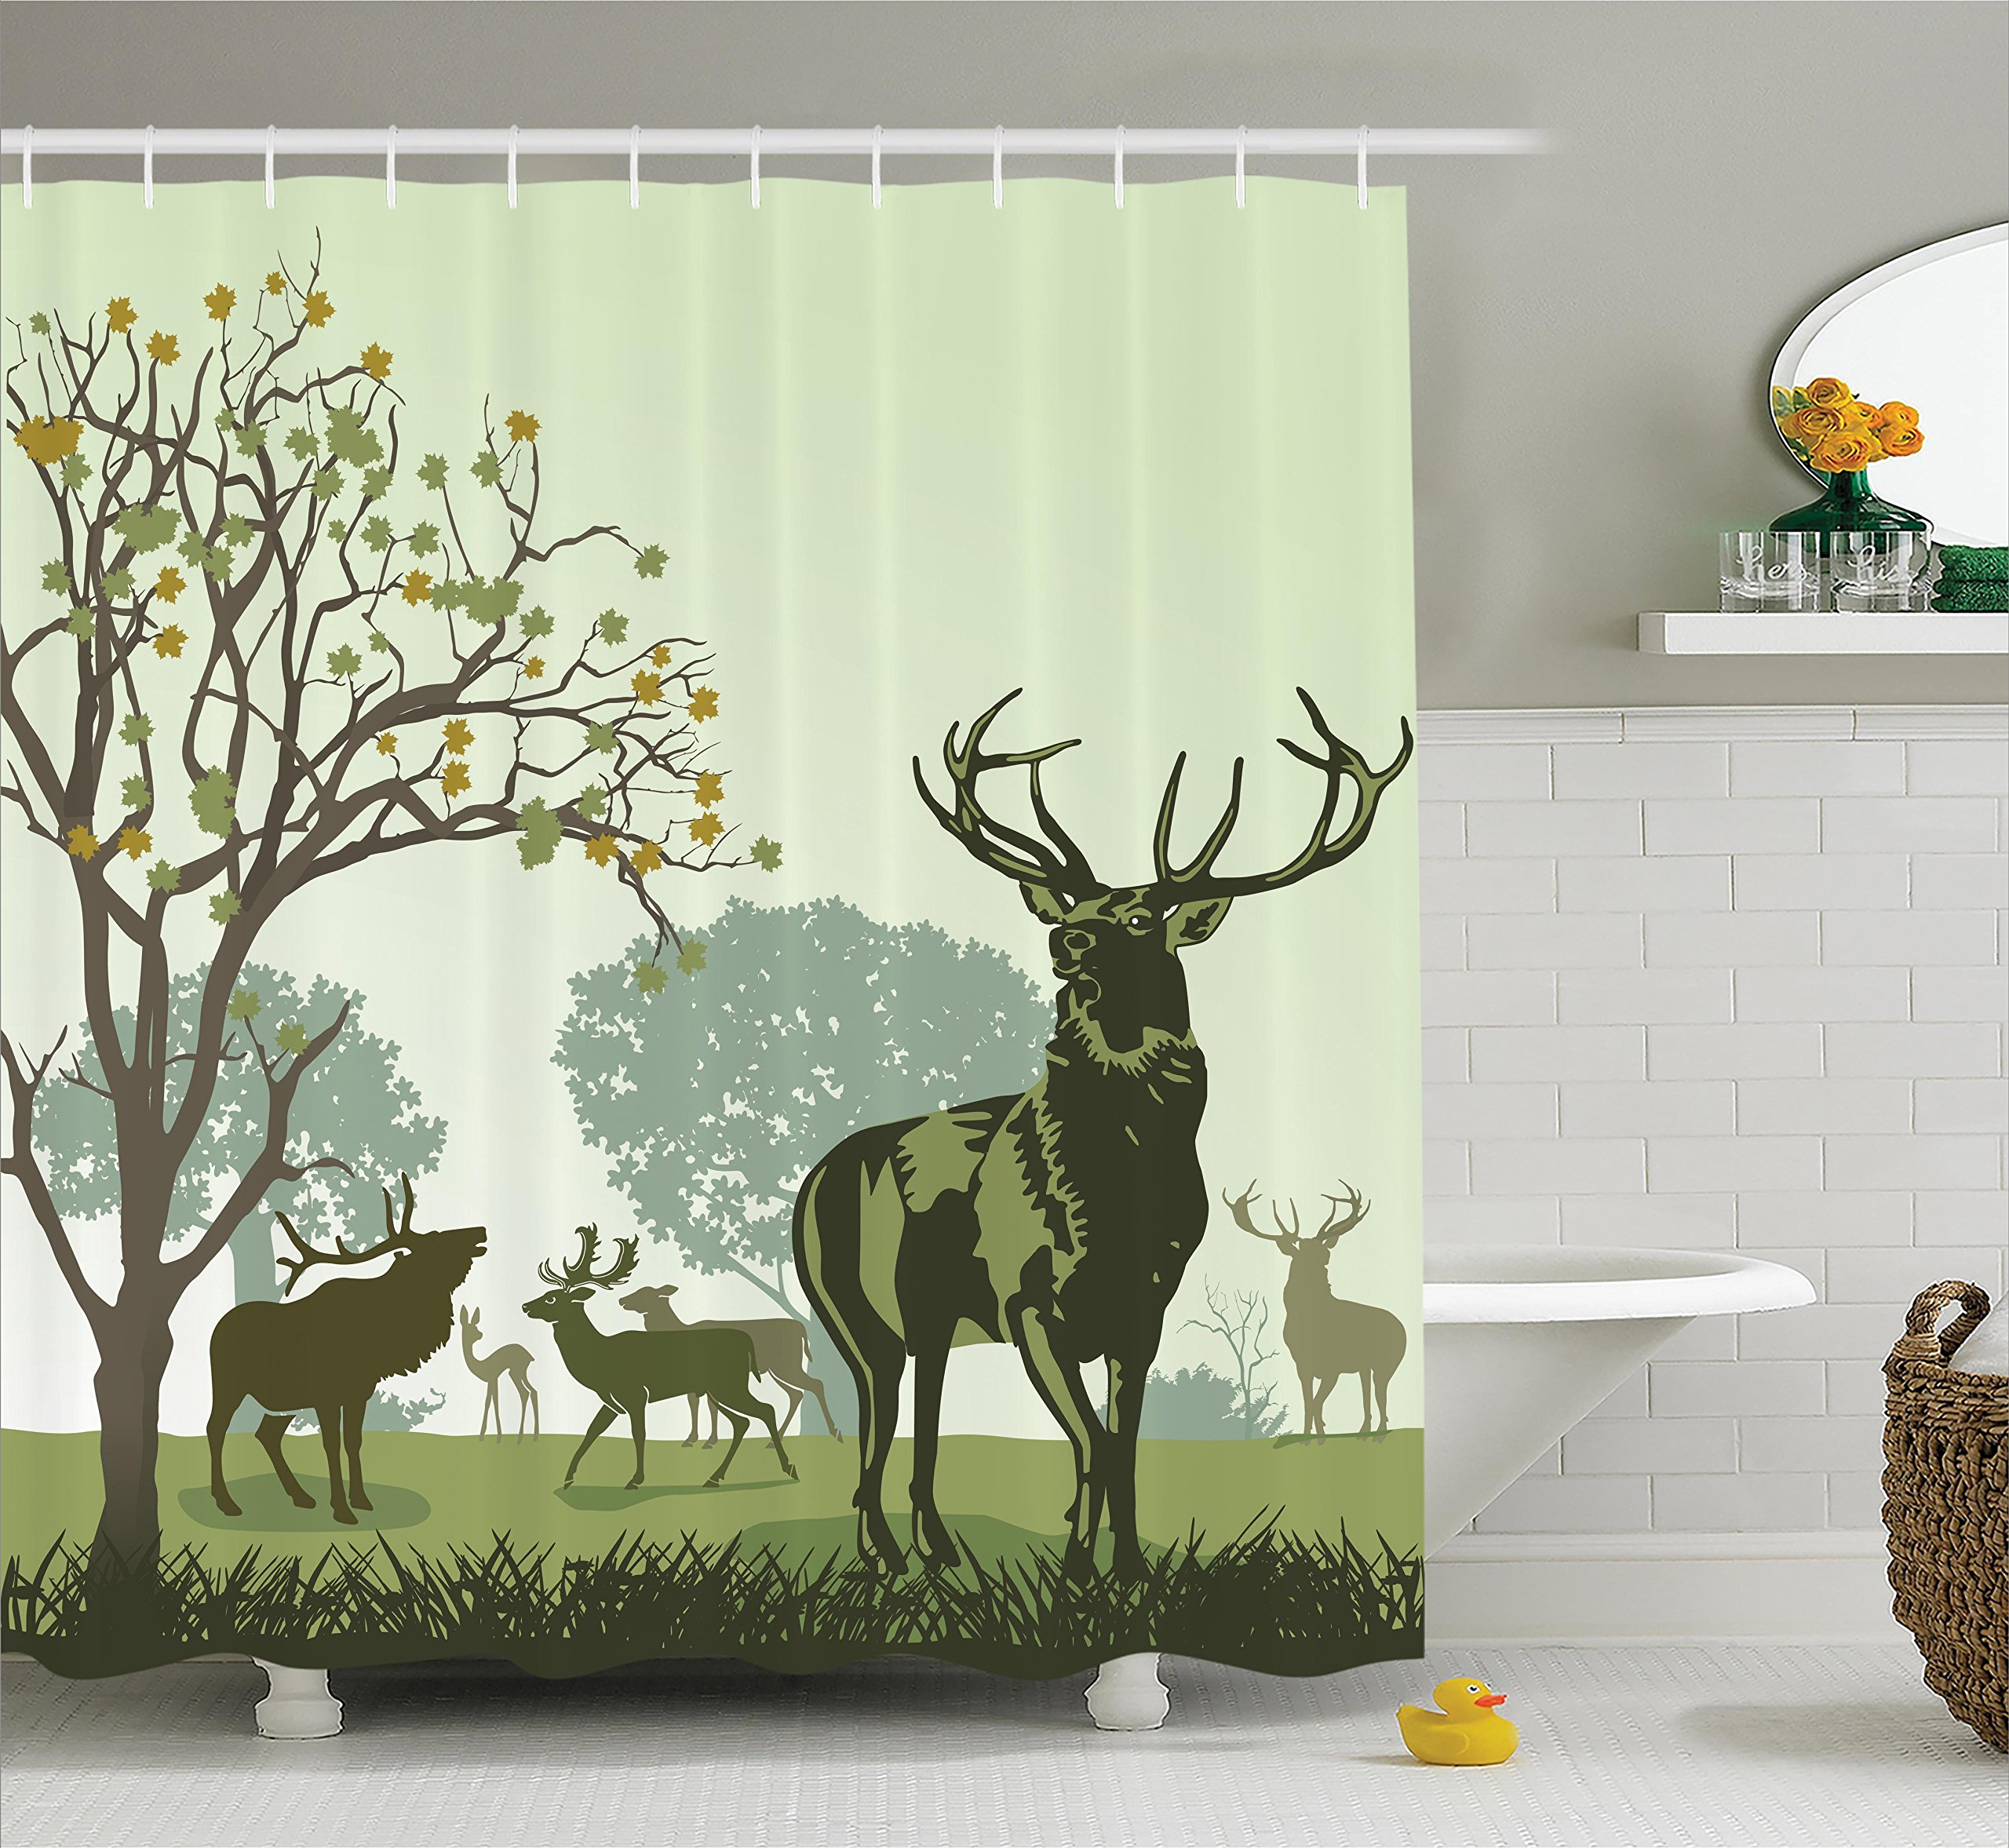 Ambesonne Antlers Decor Shower Curtain Set Deer And Wildlife In Park World Natural Heritage Forest Areas Reindeer Bathroom Accessories 75 Inches Long